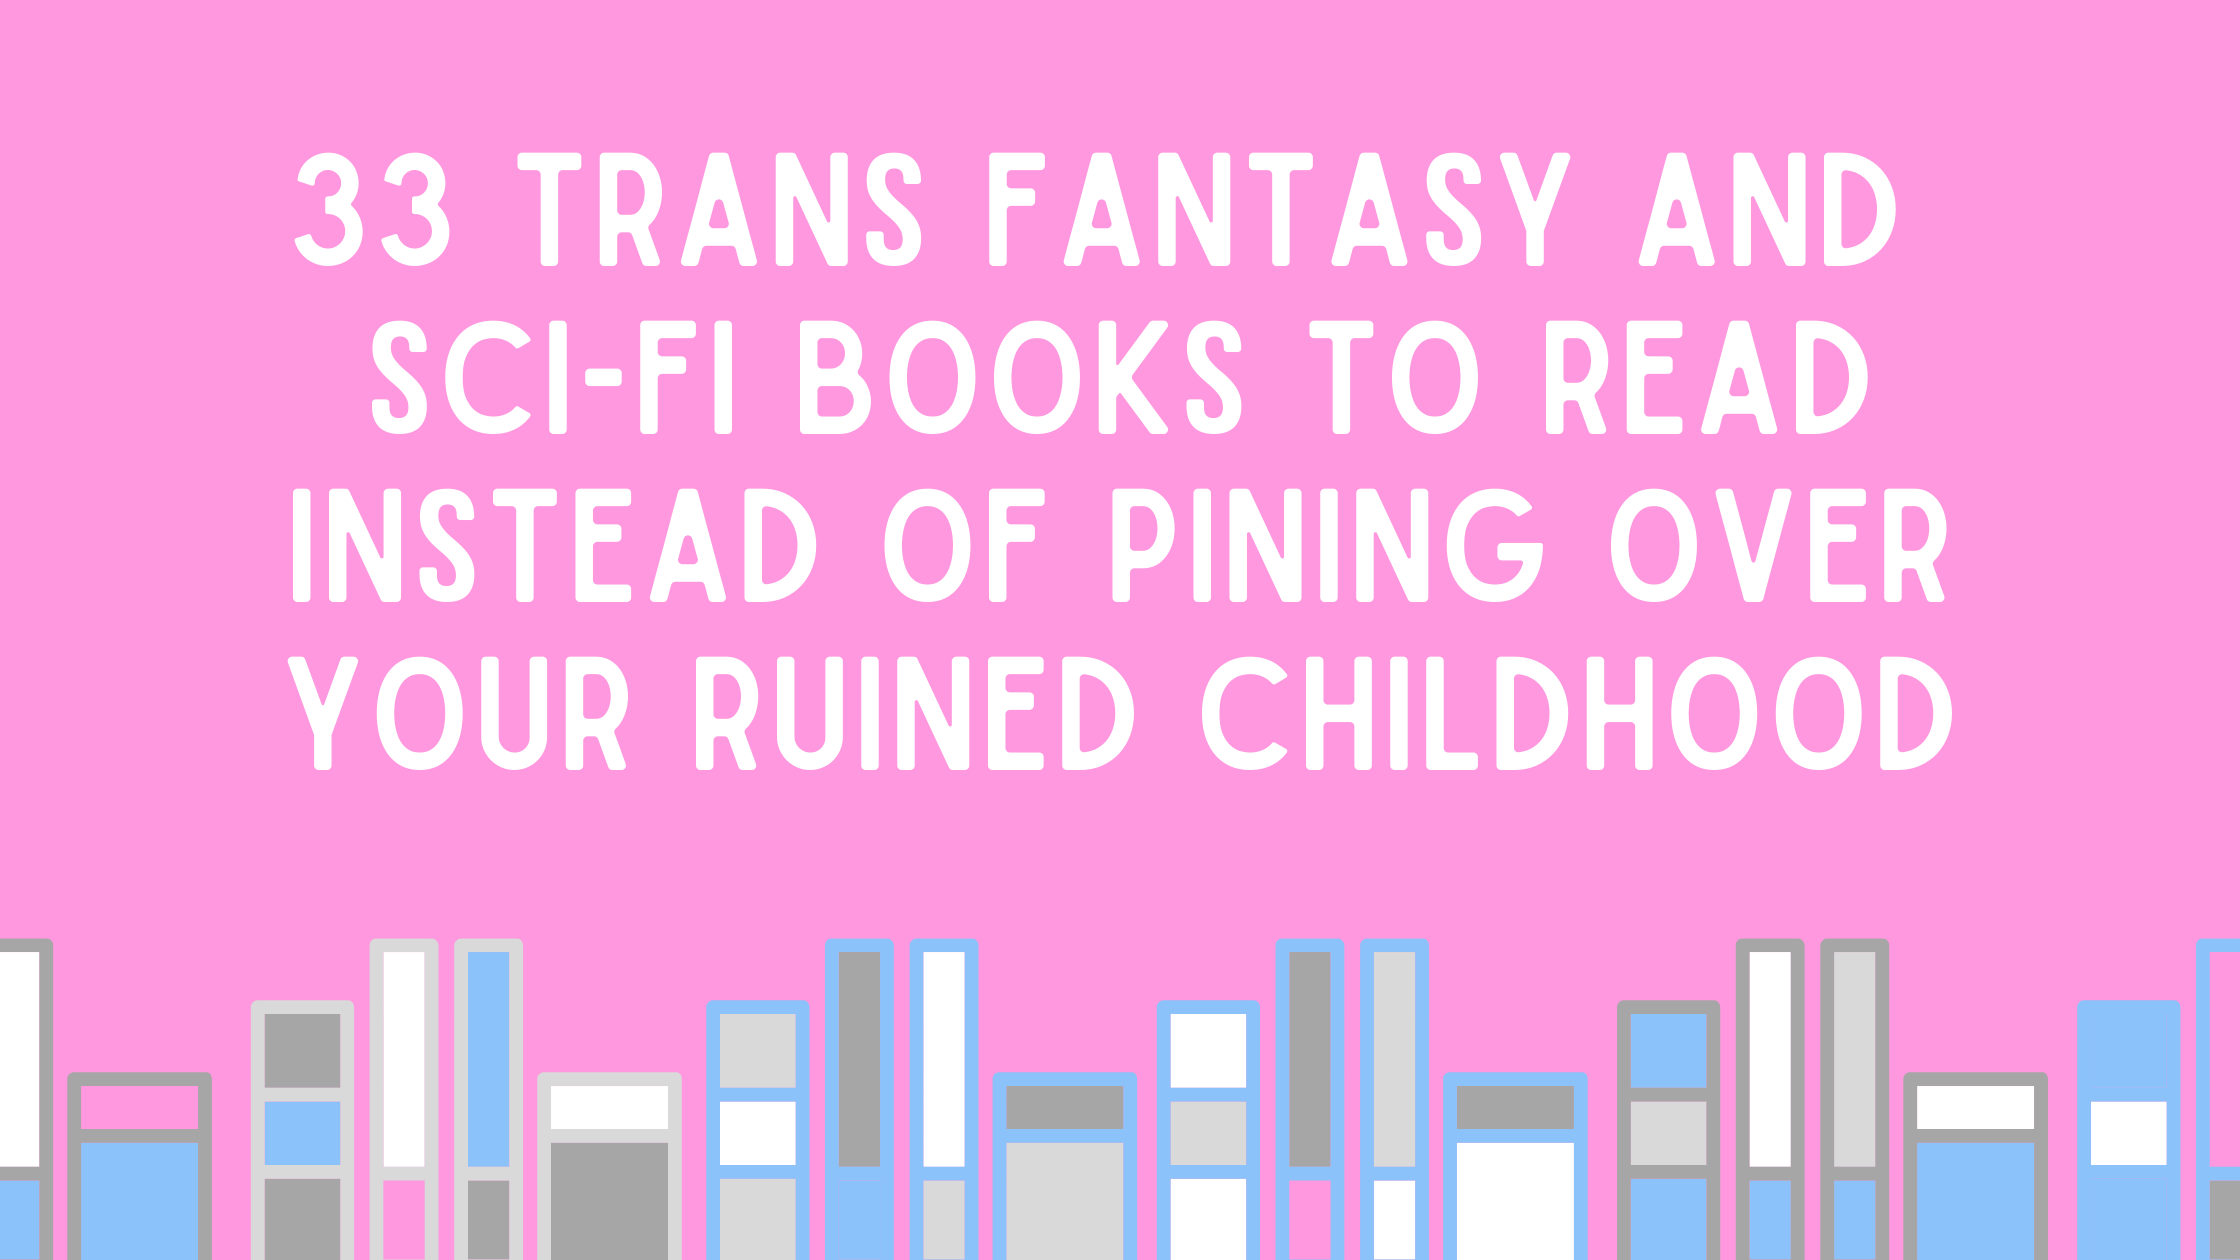 33 trans fantasy and sci-fi books to read instead of pining over your ruined childhood